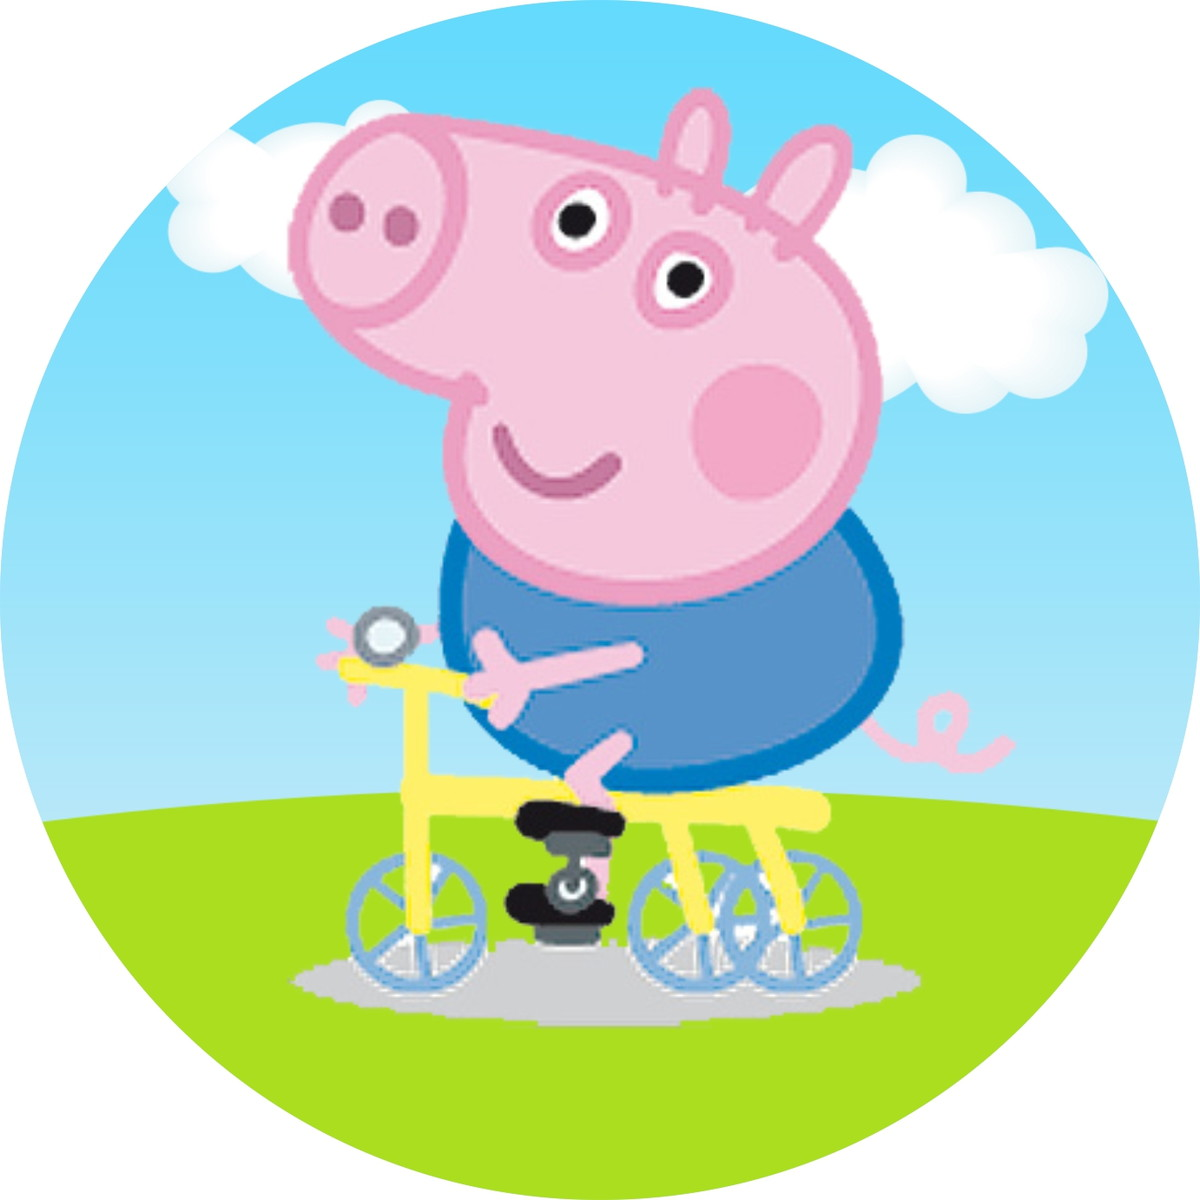 This little pig is one hell of good time no wonder tiger woods wants to marry her damm 8